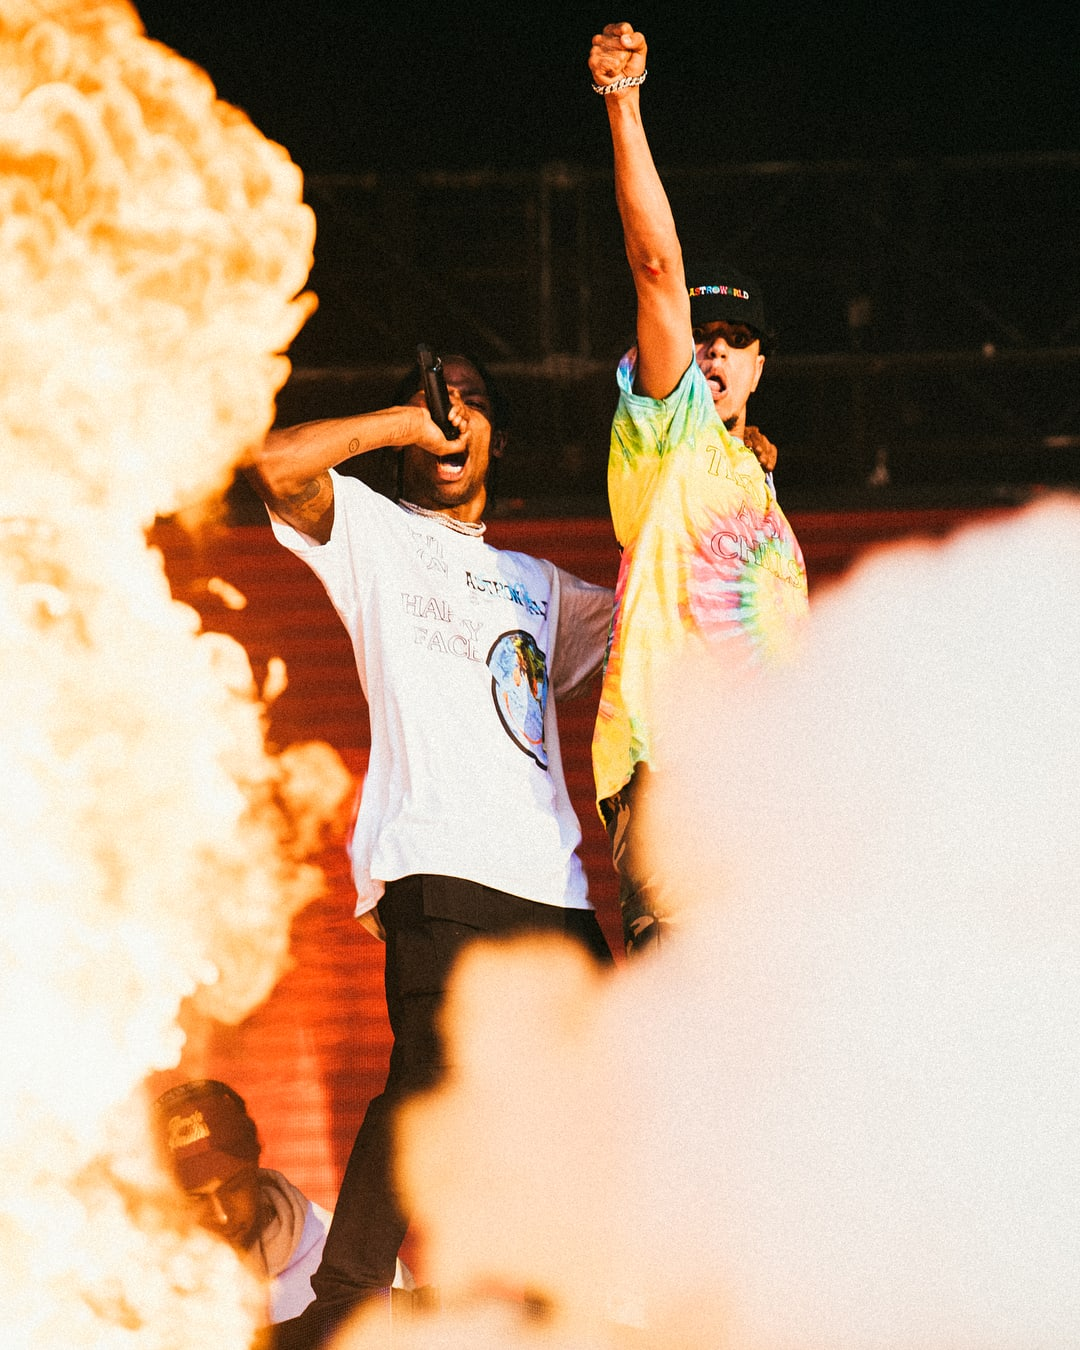 3ed9e4f6430e Travis Scott's 'ASTROWORLD' Merch Will Arrive This Week - Hunnid Grind